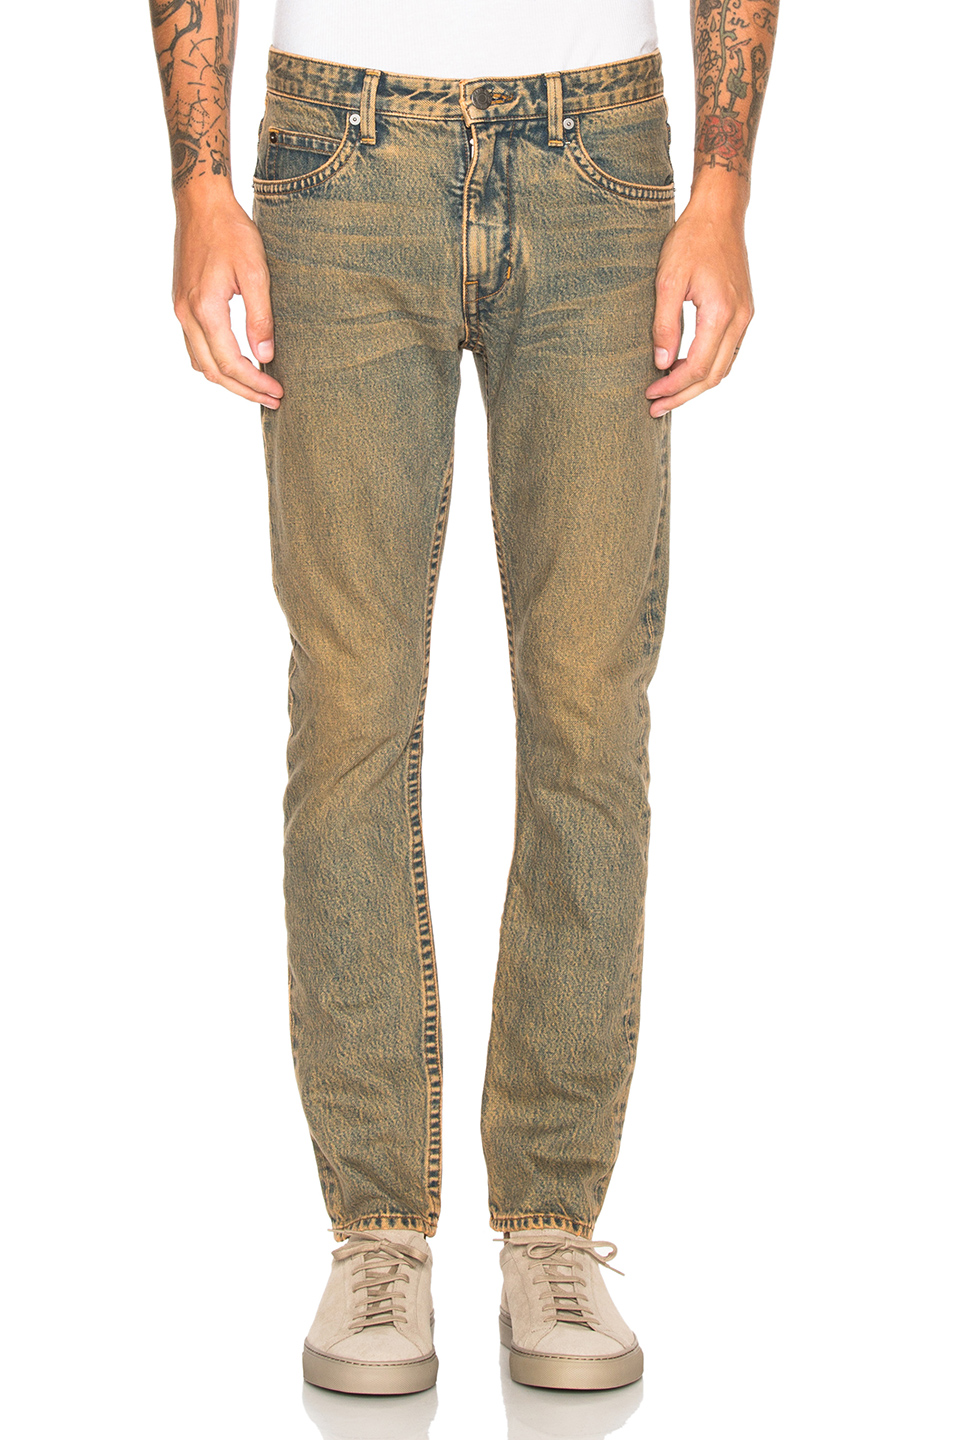 Helmut Lang Mr 87 Jeans in Blue,Orange